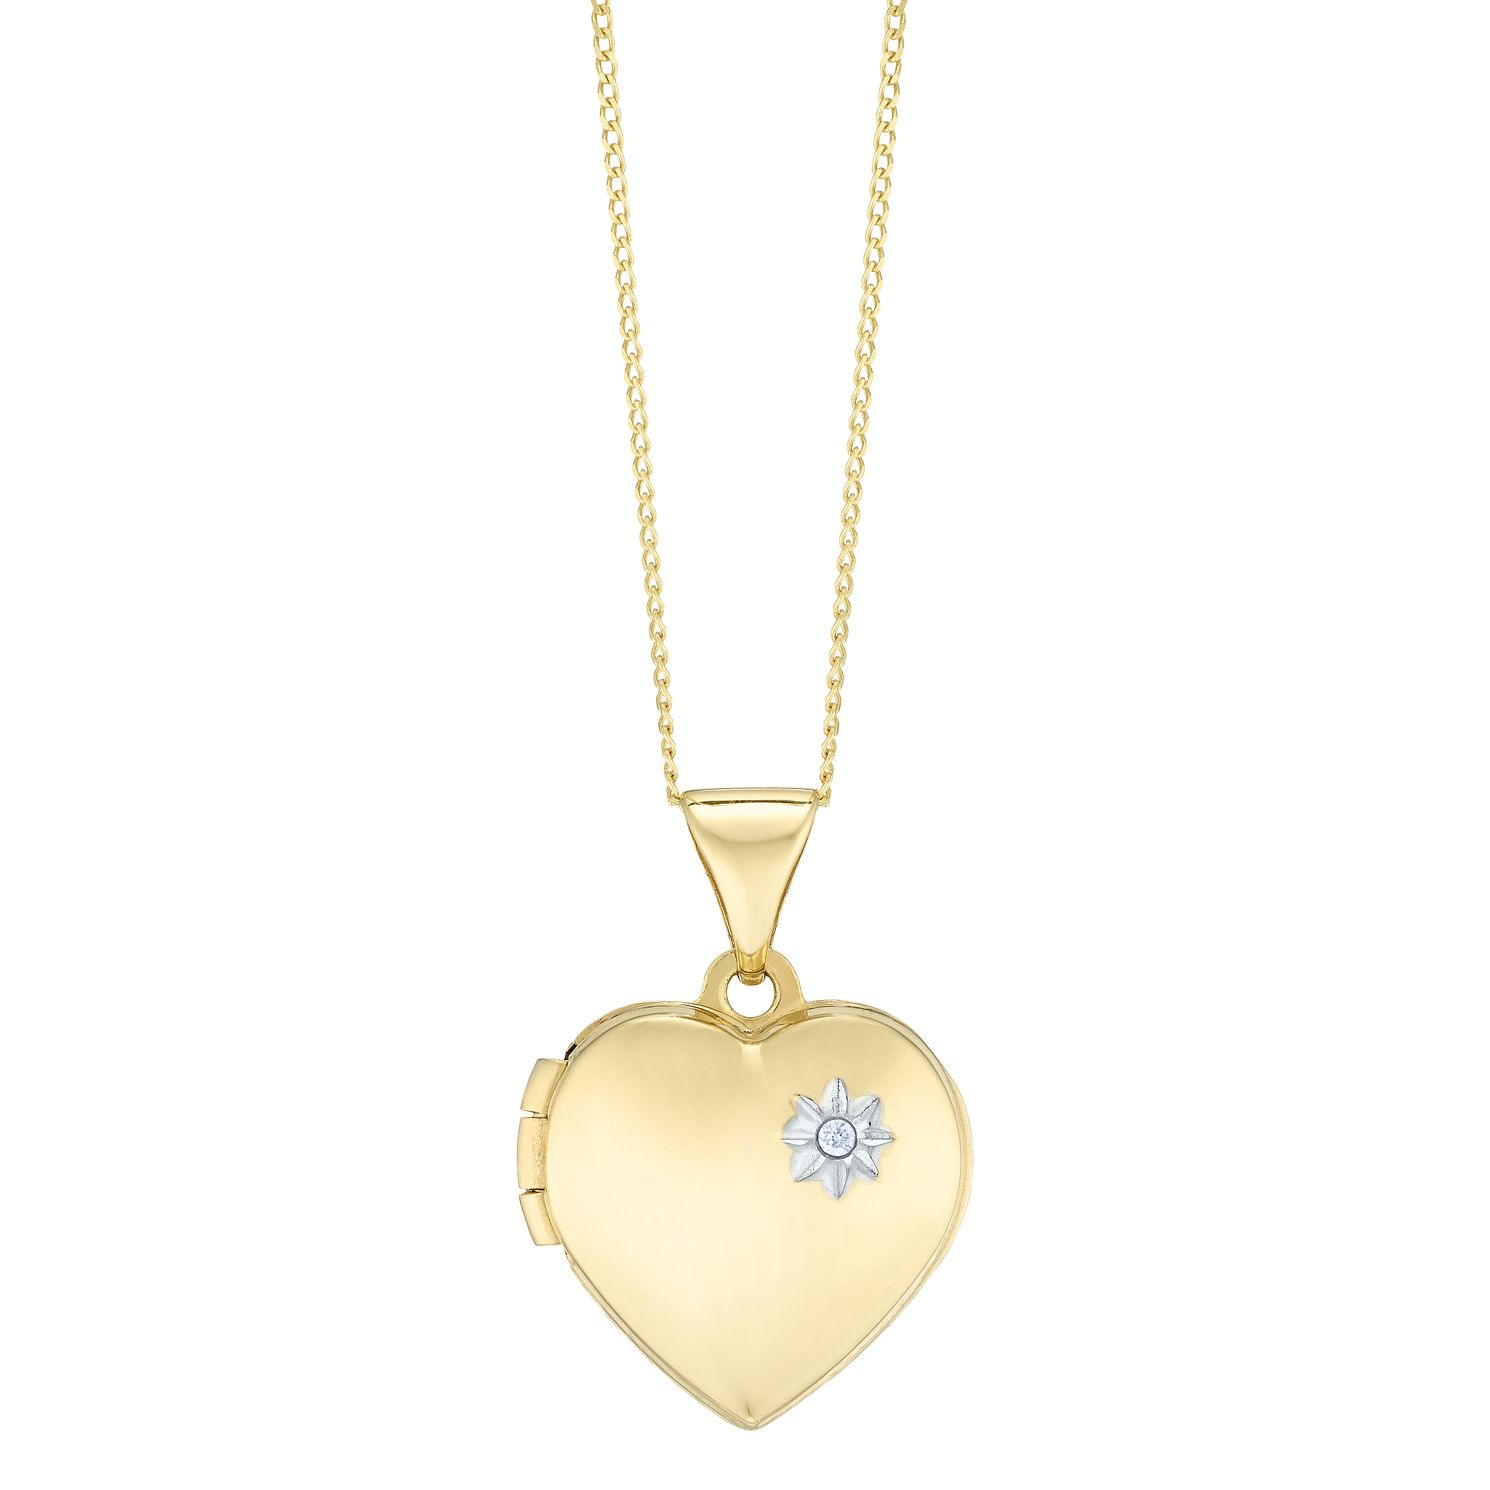 set american heart in meenaz with for lockets jewellery chain images buy jewmeenaz alphabet letter g diamond men women pdp cz plated paytm product locket catalog com gold pendant love valentine gifts and s